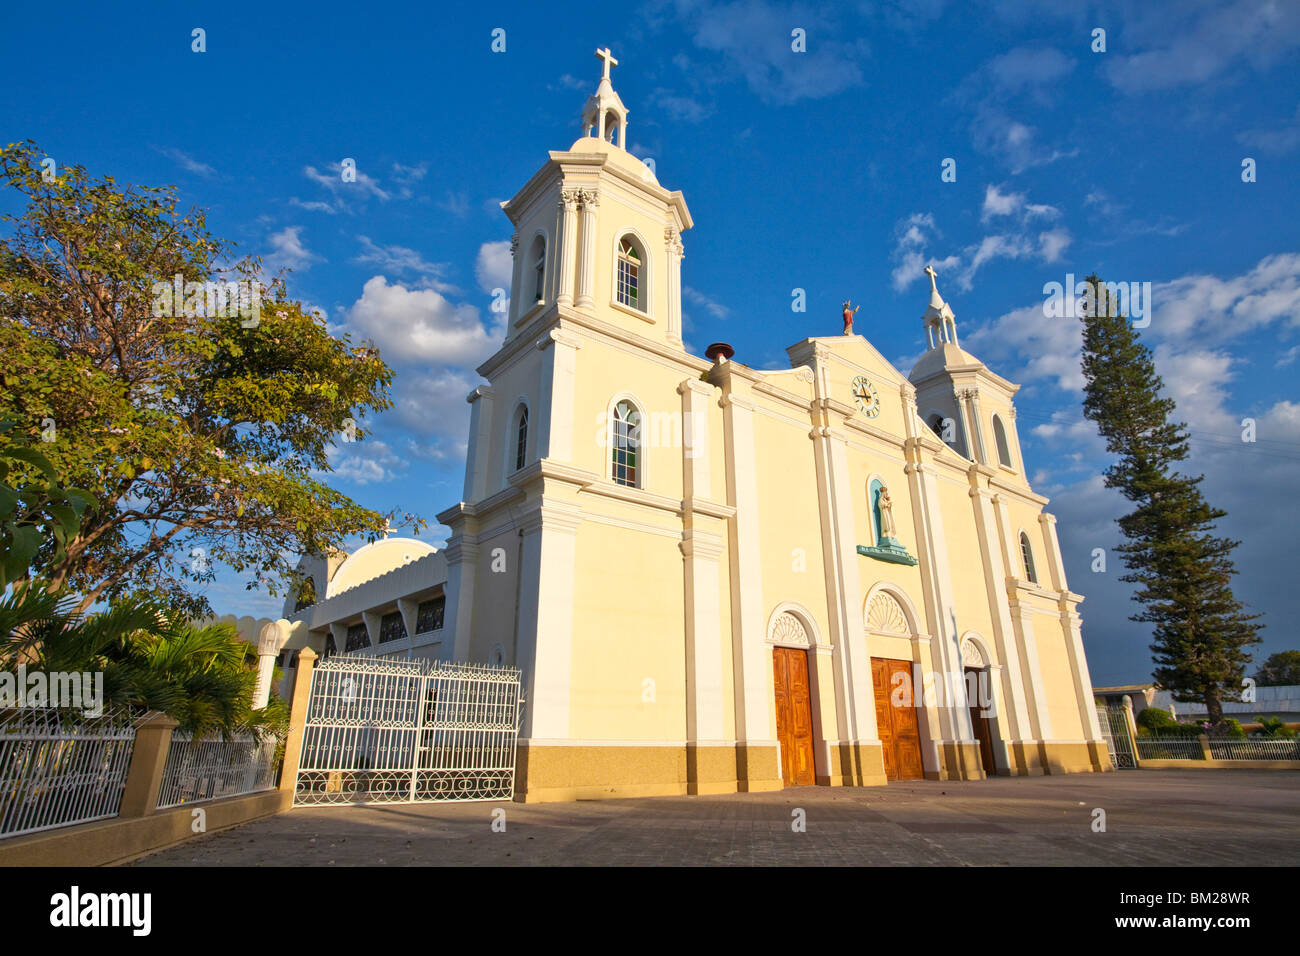 Cathedral, Park Central, Esteli, Nicaragua - Stock Image